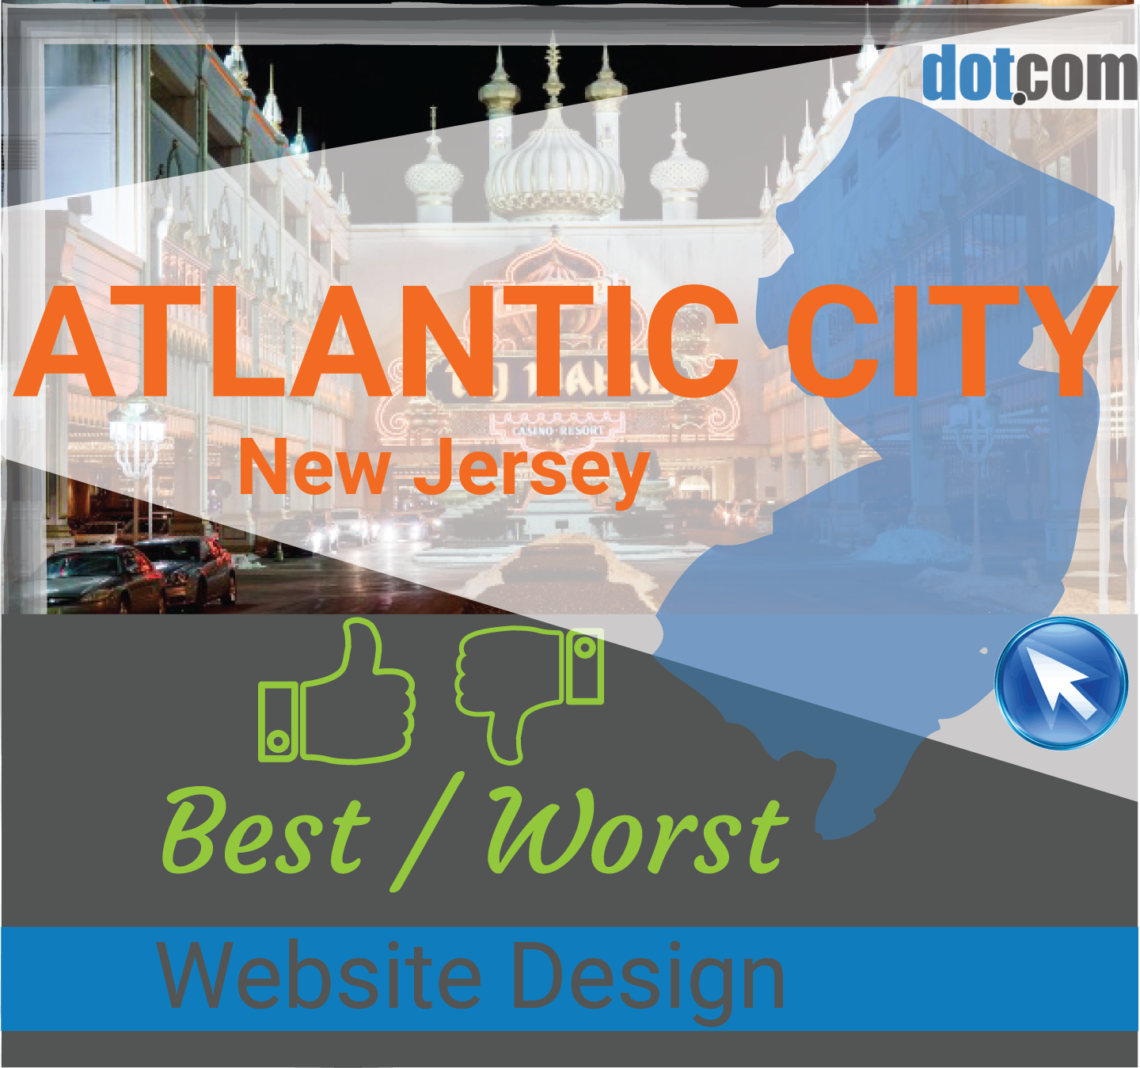 Atlantic City NJ Website Design  Evaluation of the Best and Worst fa0e2751d6e21